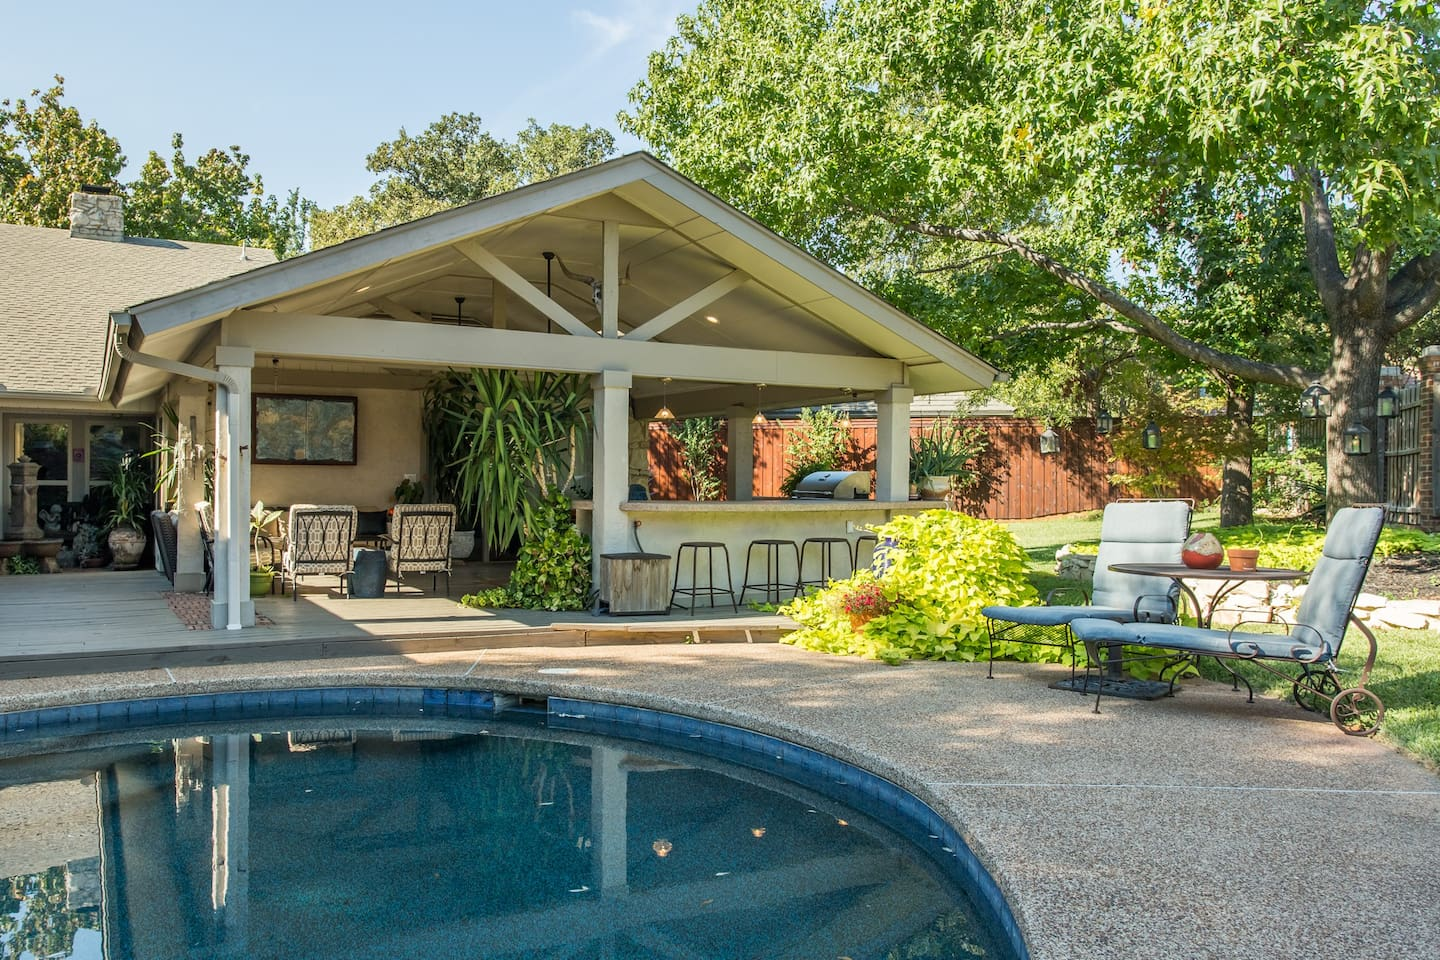 Outdoor bar, pool loungers, cable TV viewing from  pool, couches, table for 10+